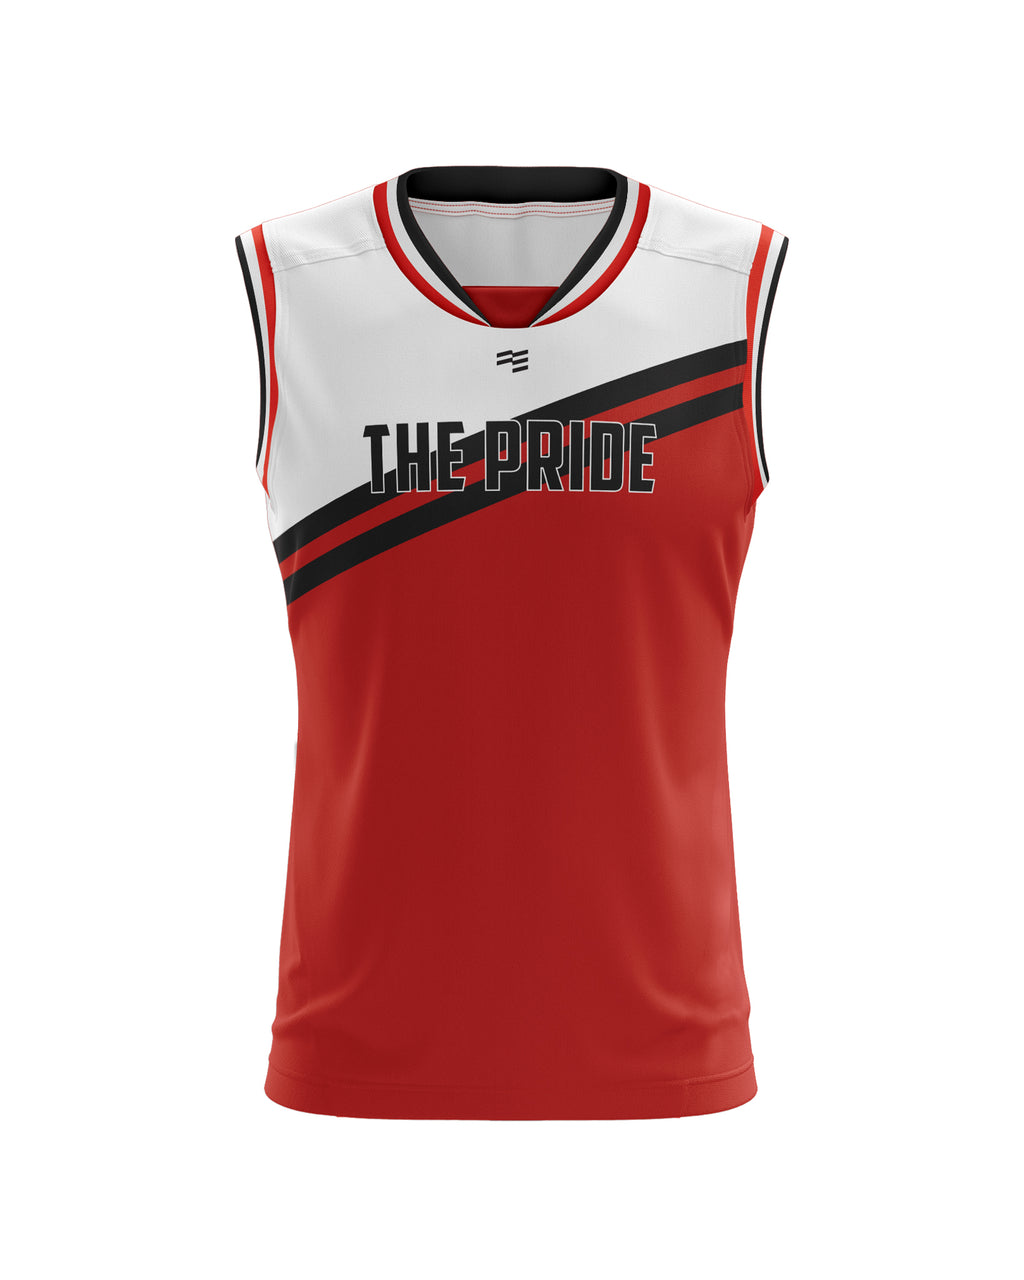 The Pride Aussie Rules Guernsey - Mens